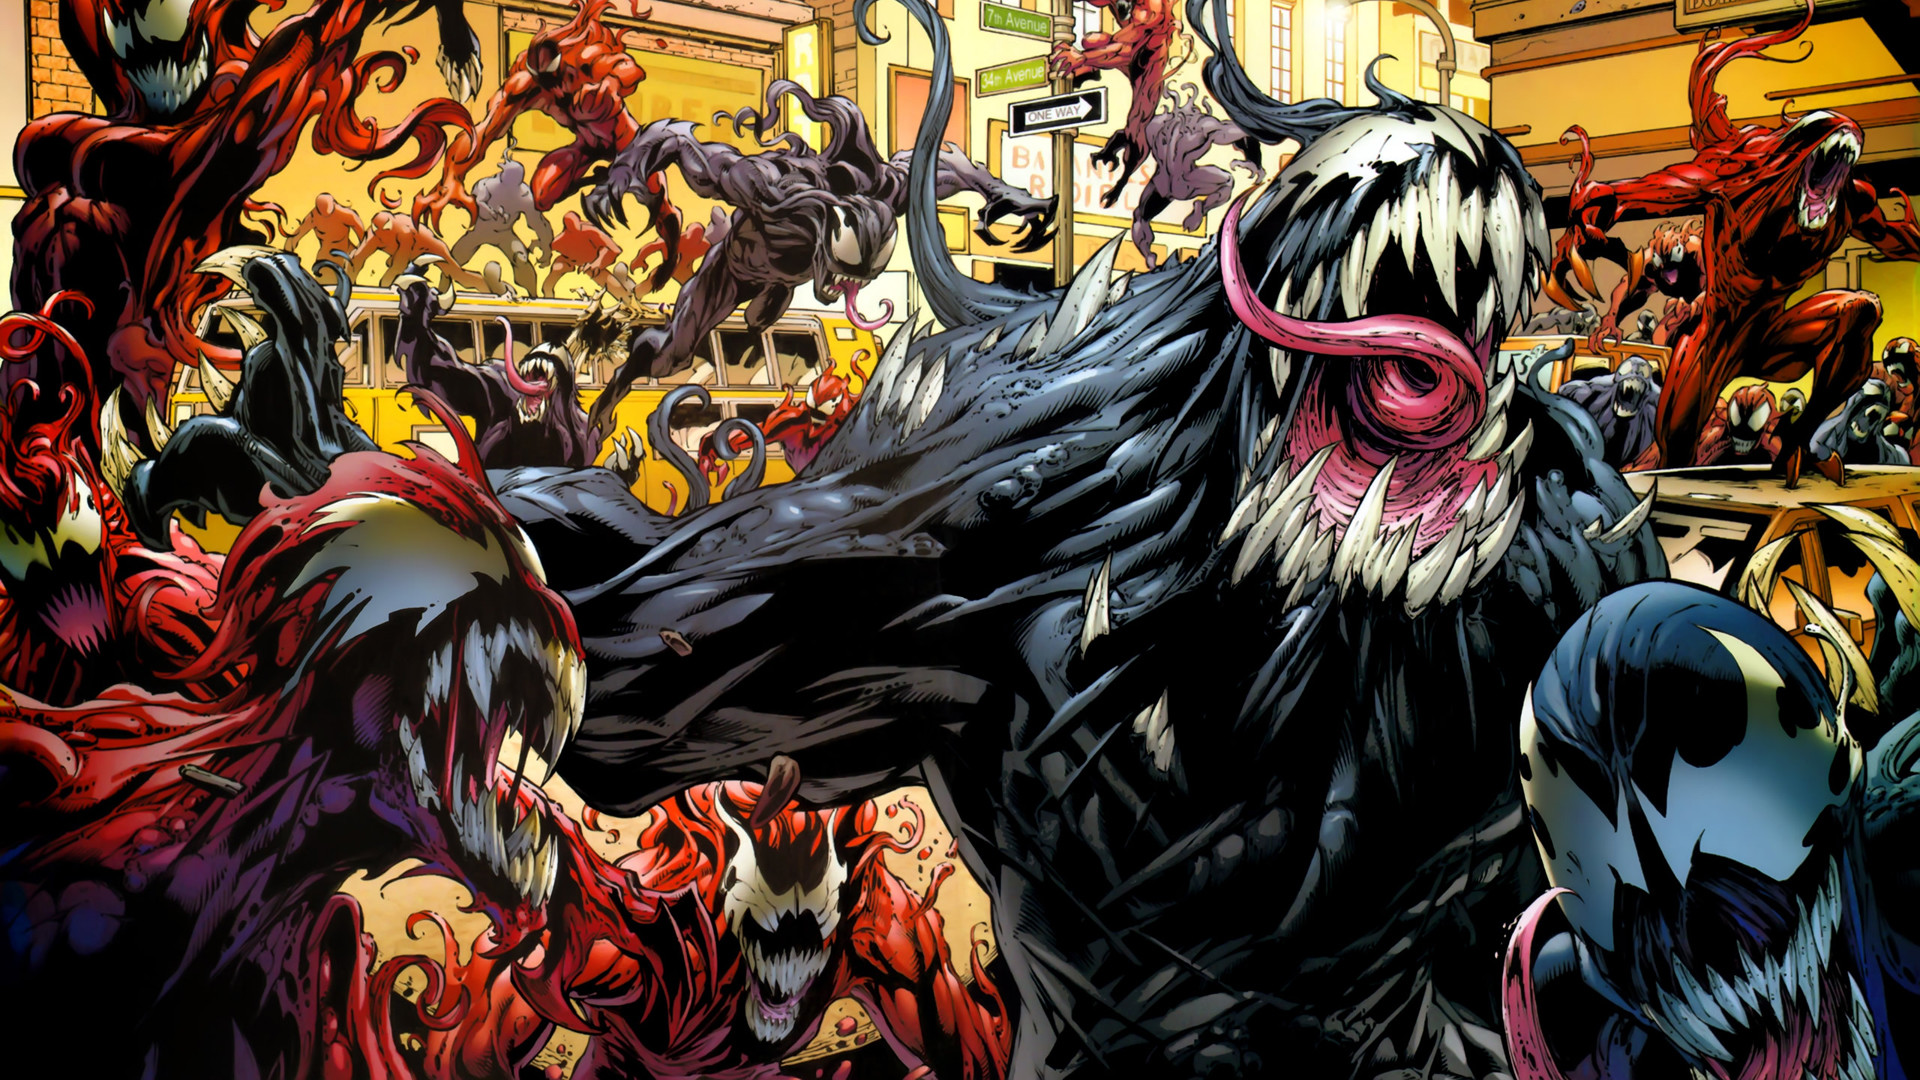 1920x1080 Venom Vs Carnage Wallpaper HD